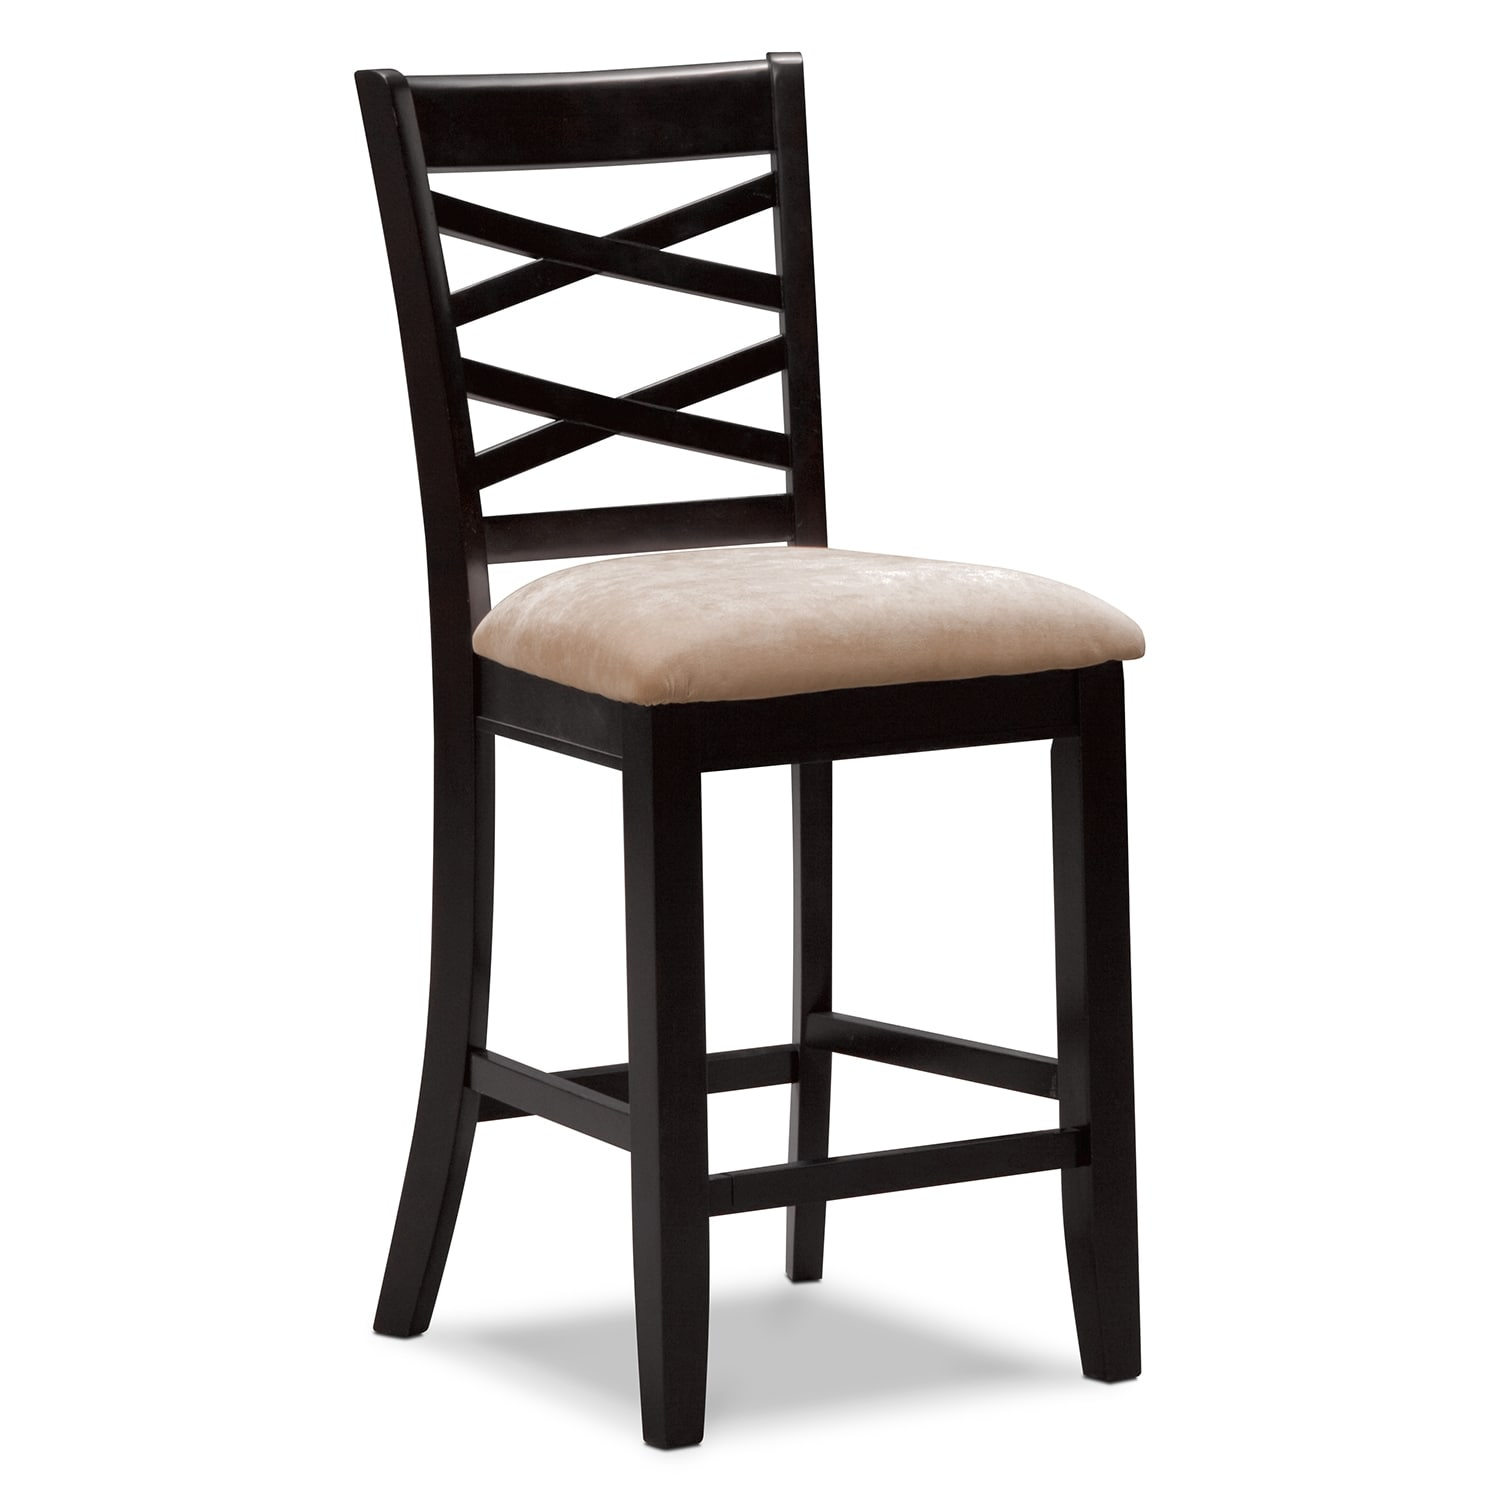 Dining Bar Stools: Americana Espresso Counter-Height Stool